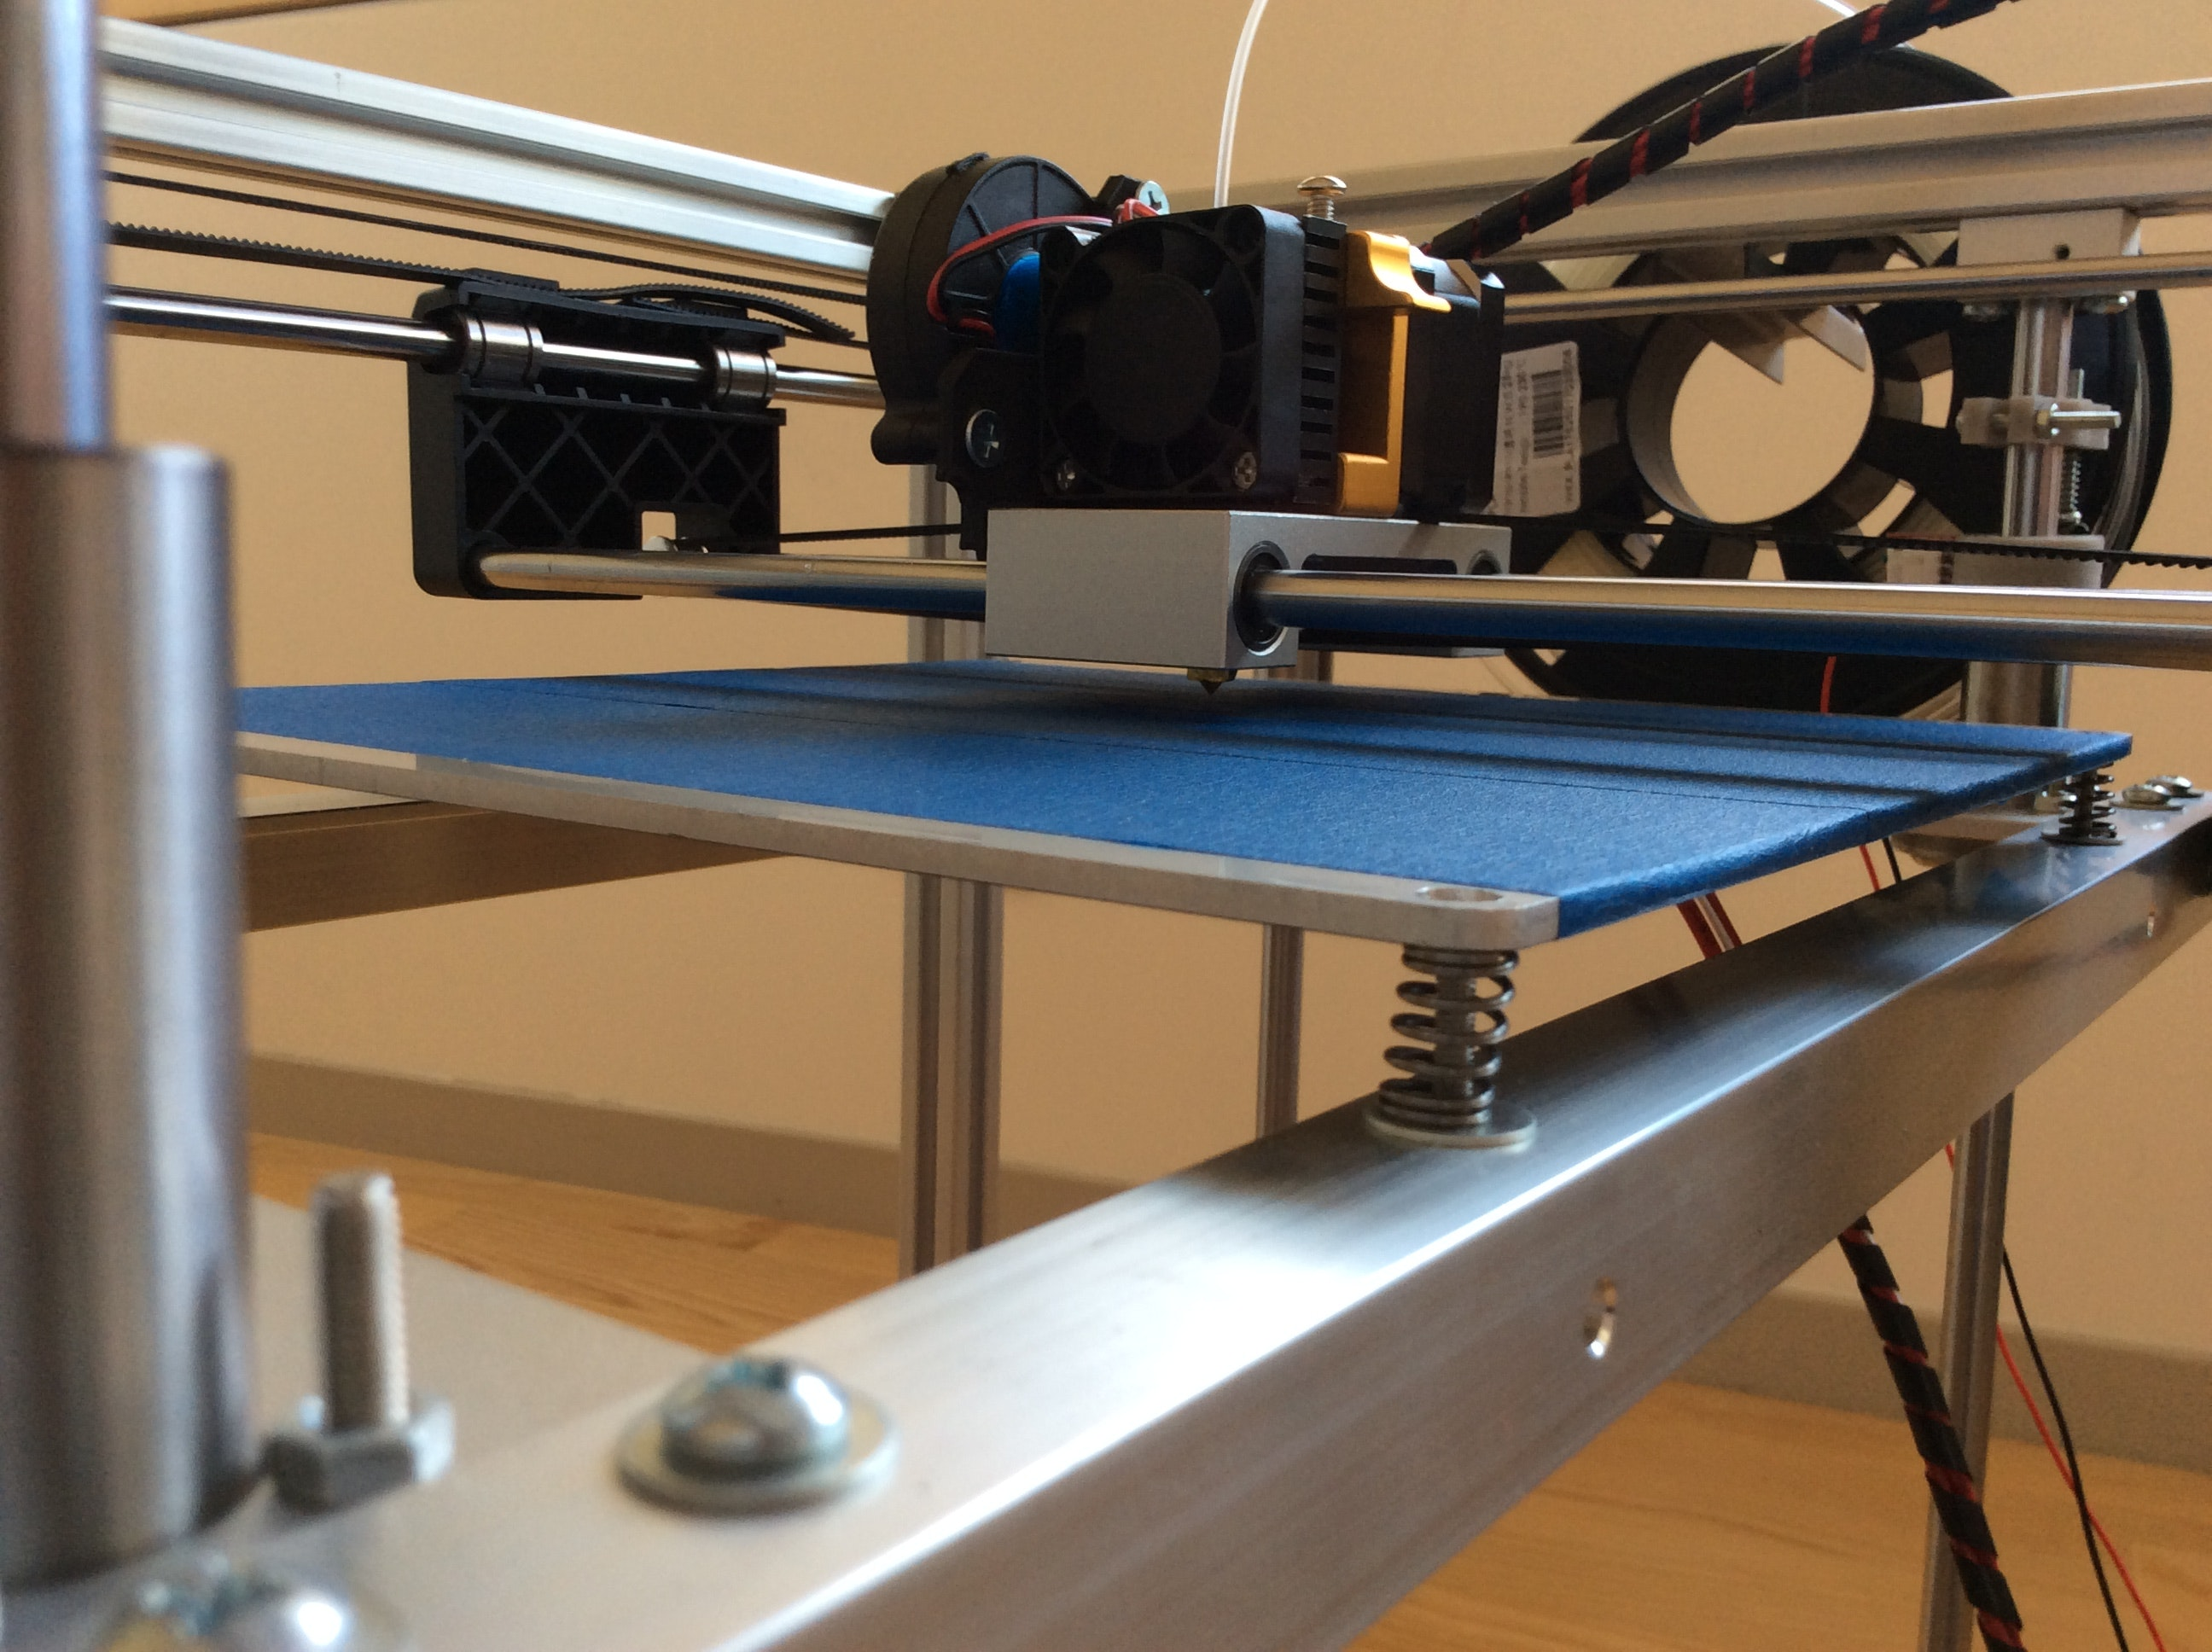 img_0003_DFizhHZYtE?auto=compress%2Cformat&w=680&h=510&fit=max the arduino 3d printer, flyingbear p902 arduino project hub  at reclaimingppi.co